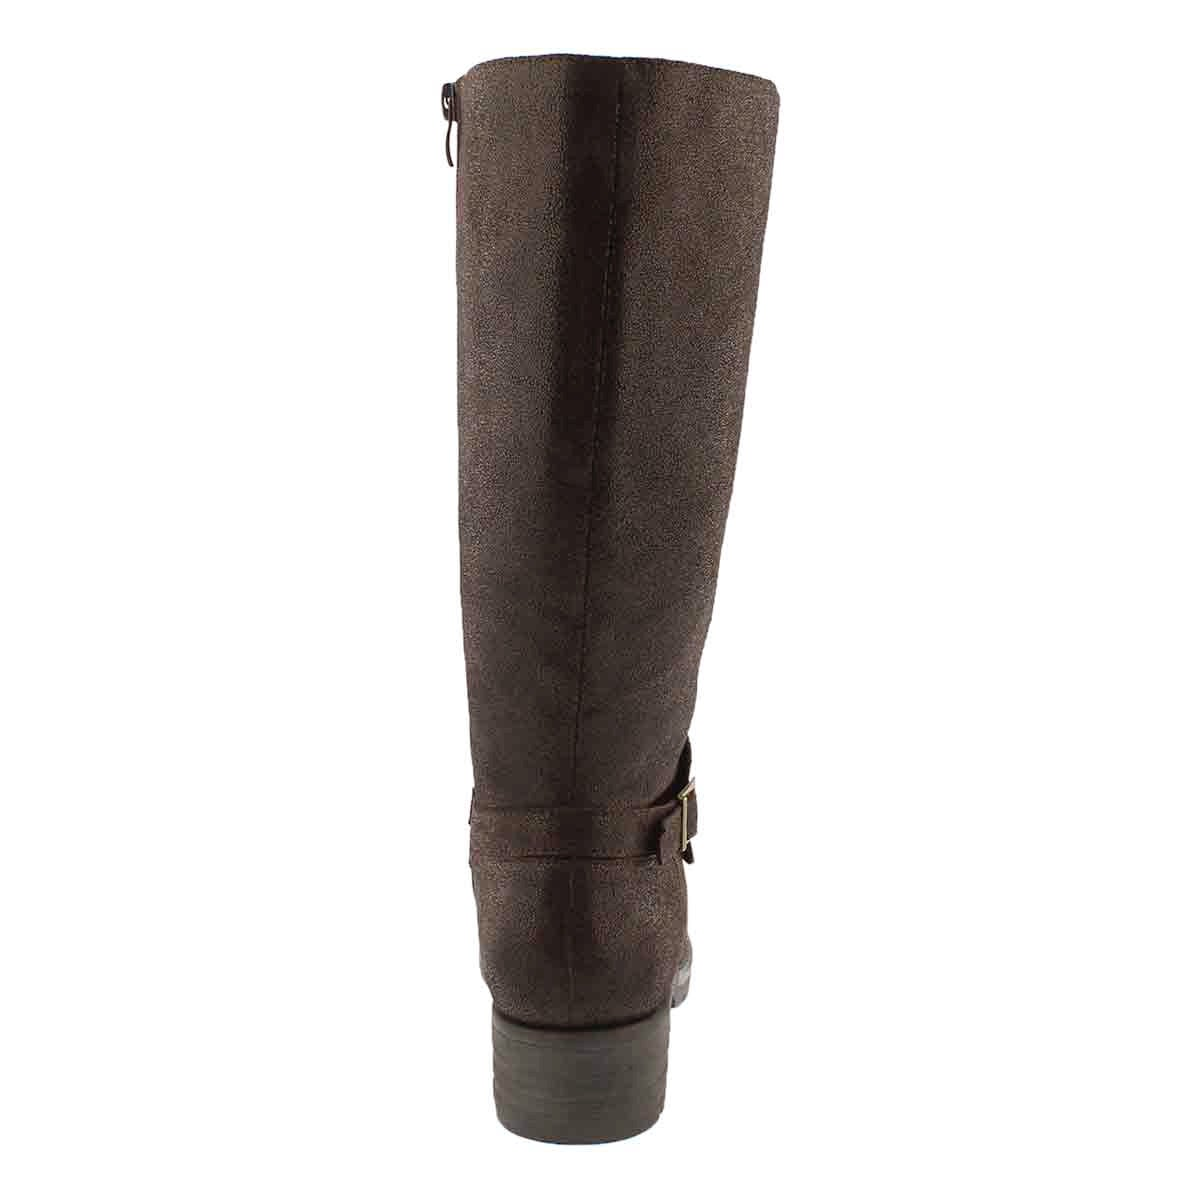 Lds Dominique 2 brown tall riding boot